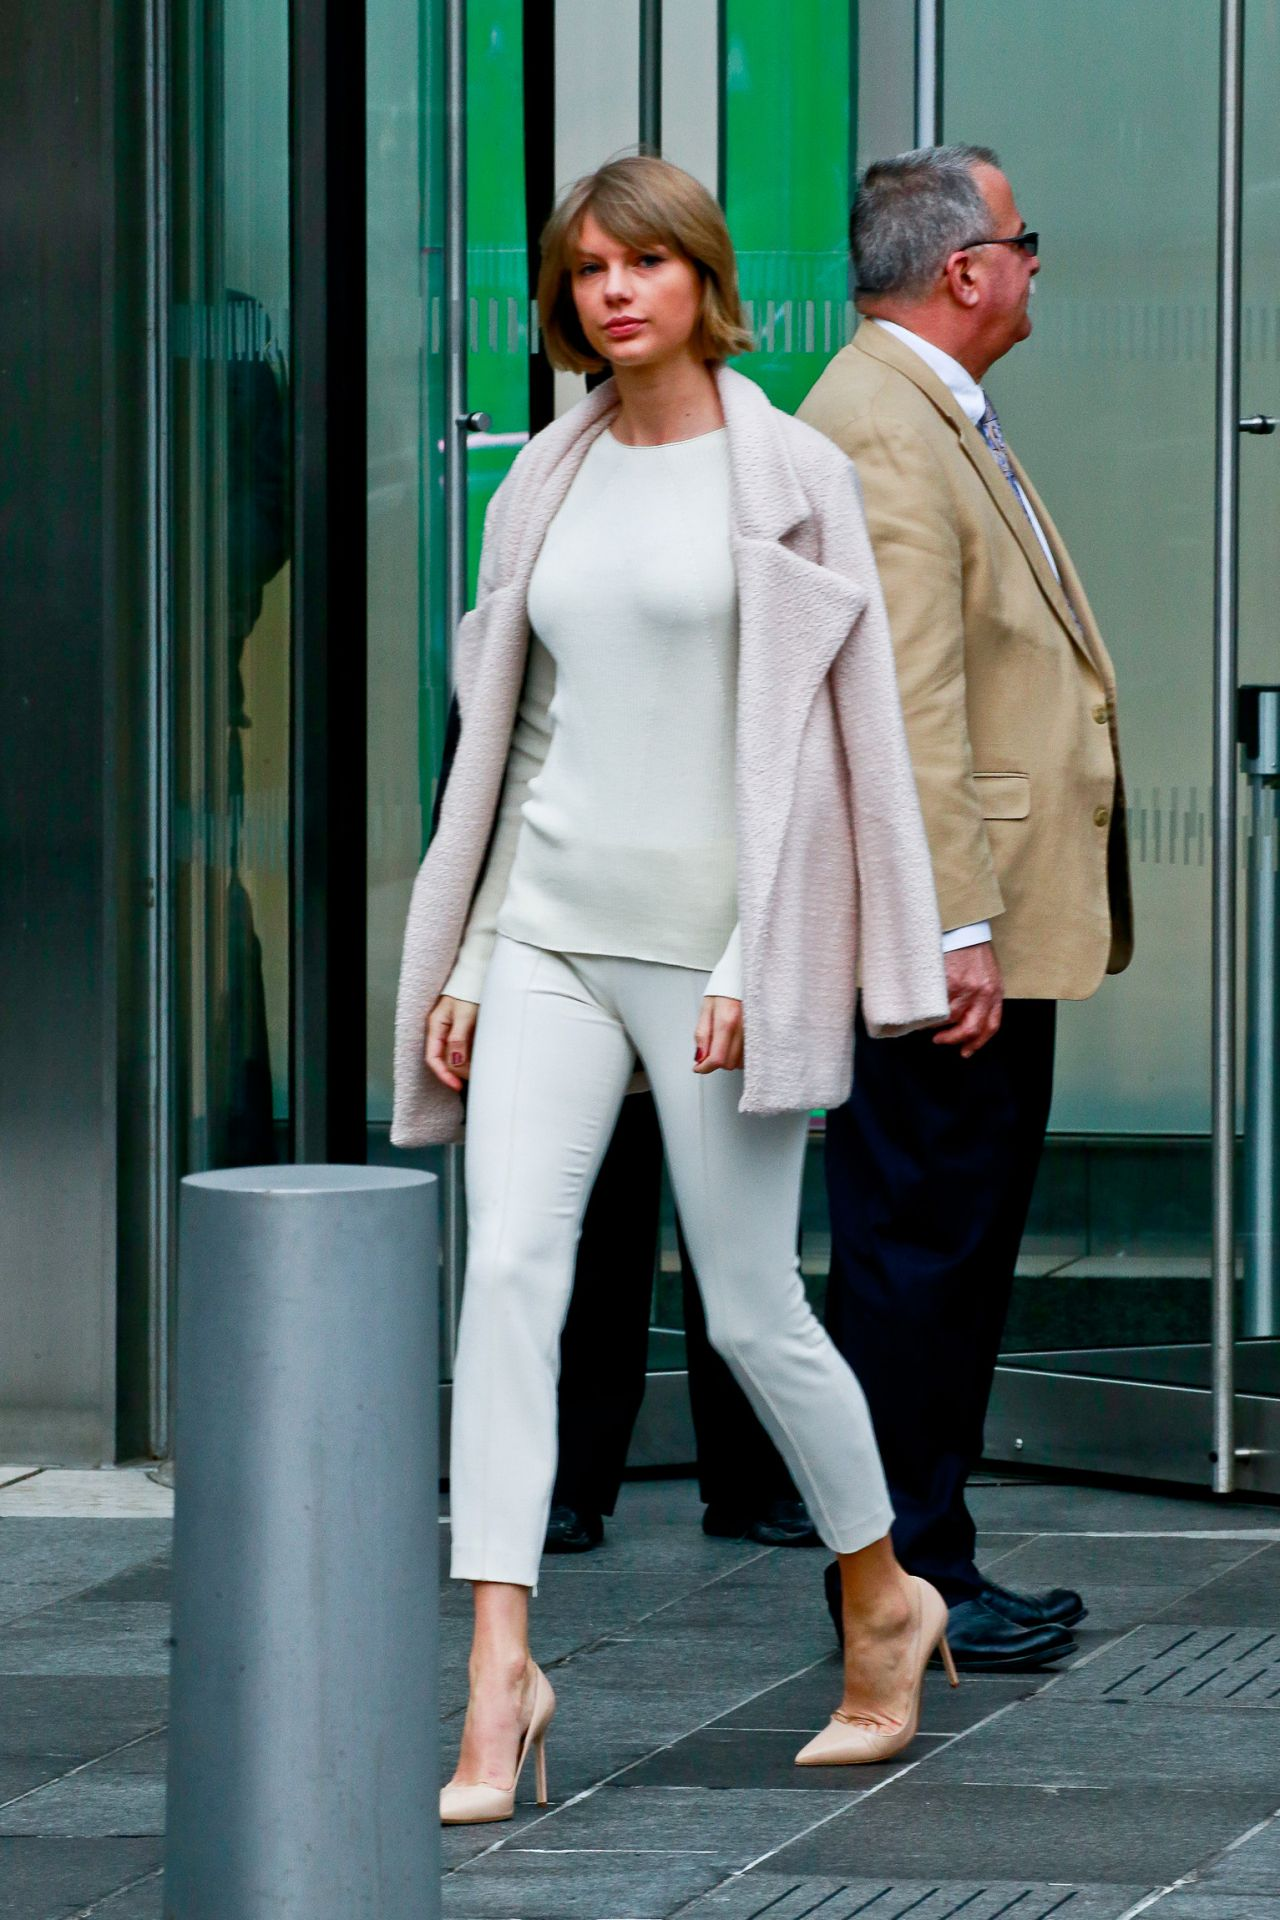 Taylor Swift Leaving Vogue S Office In Nyc 2 21 2016